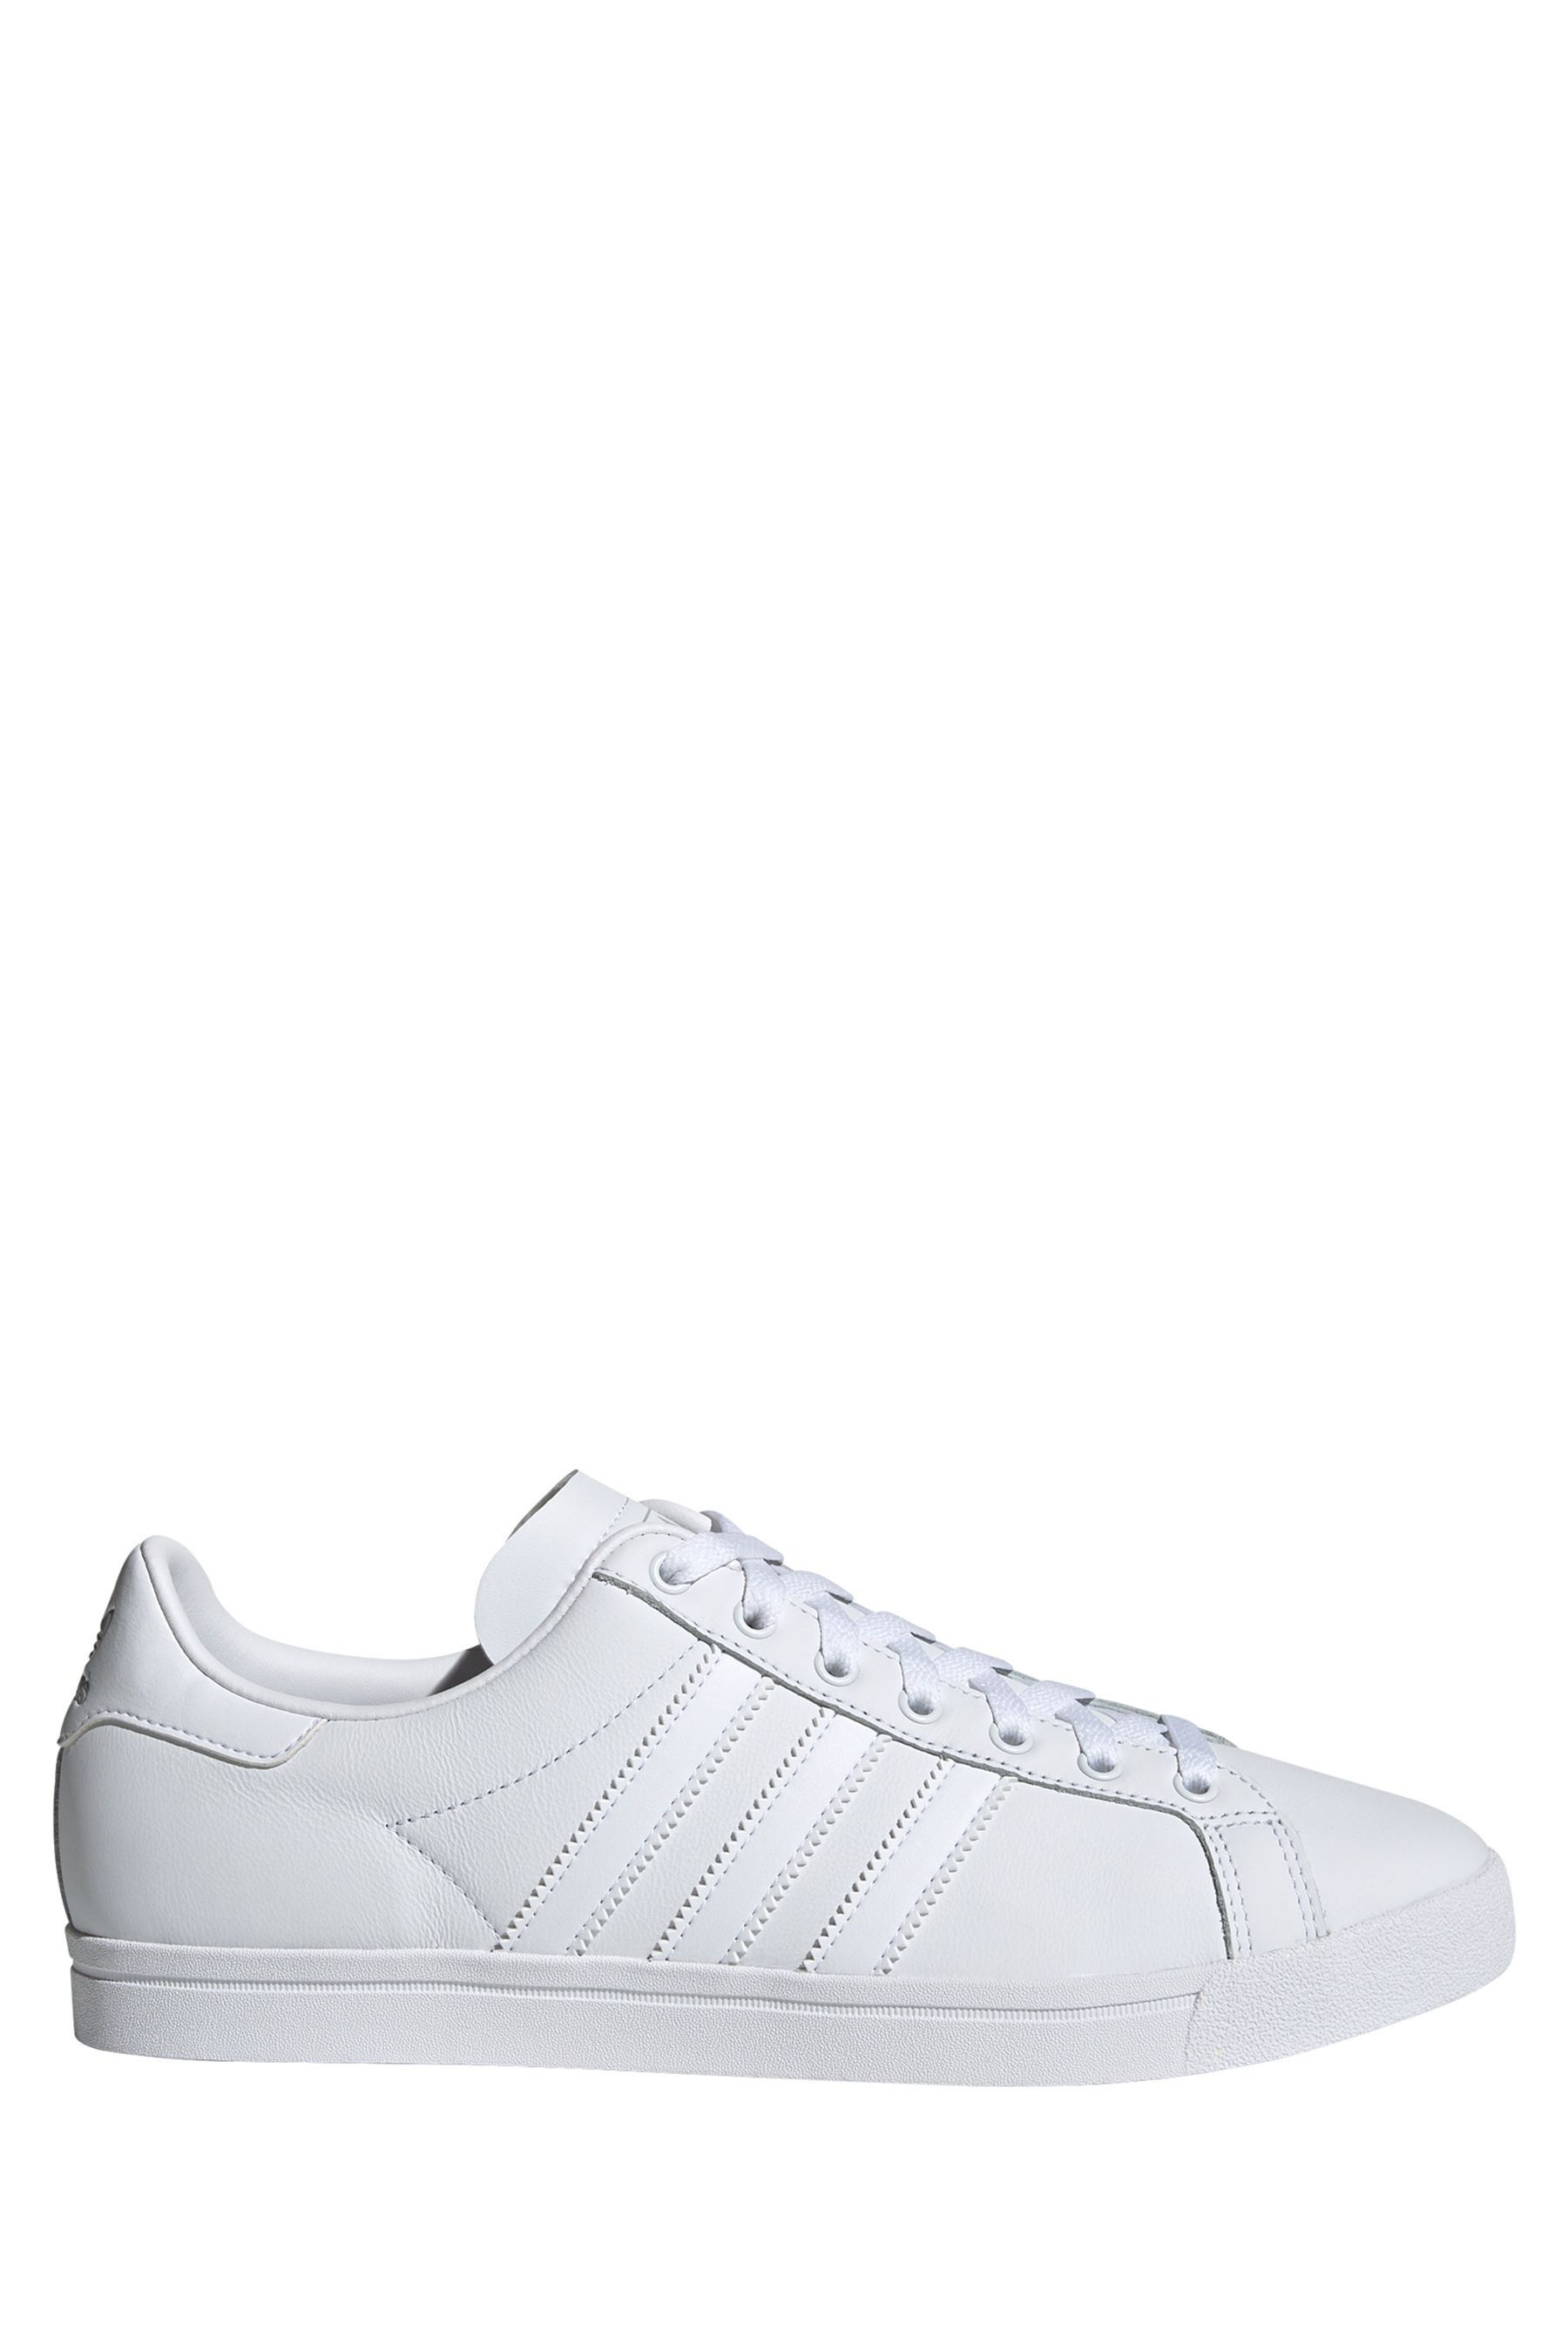 Buy adidas Originals at Shop |